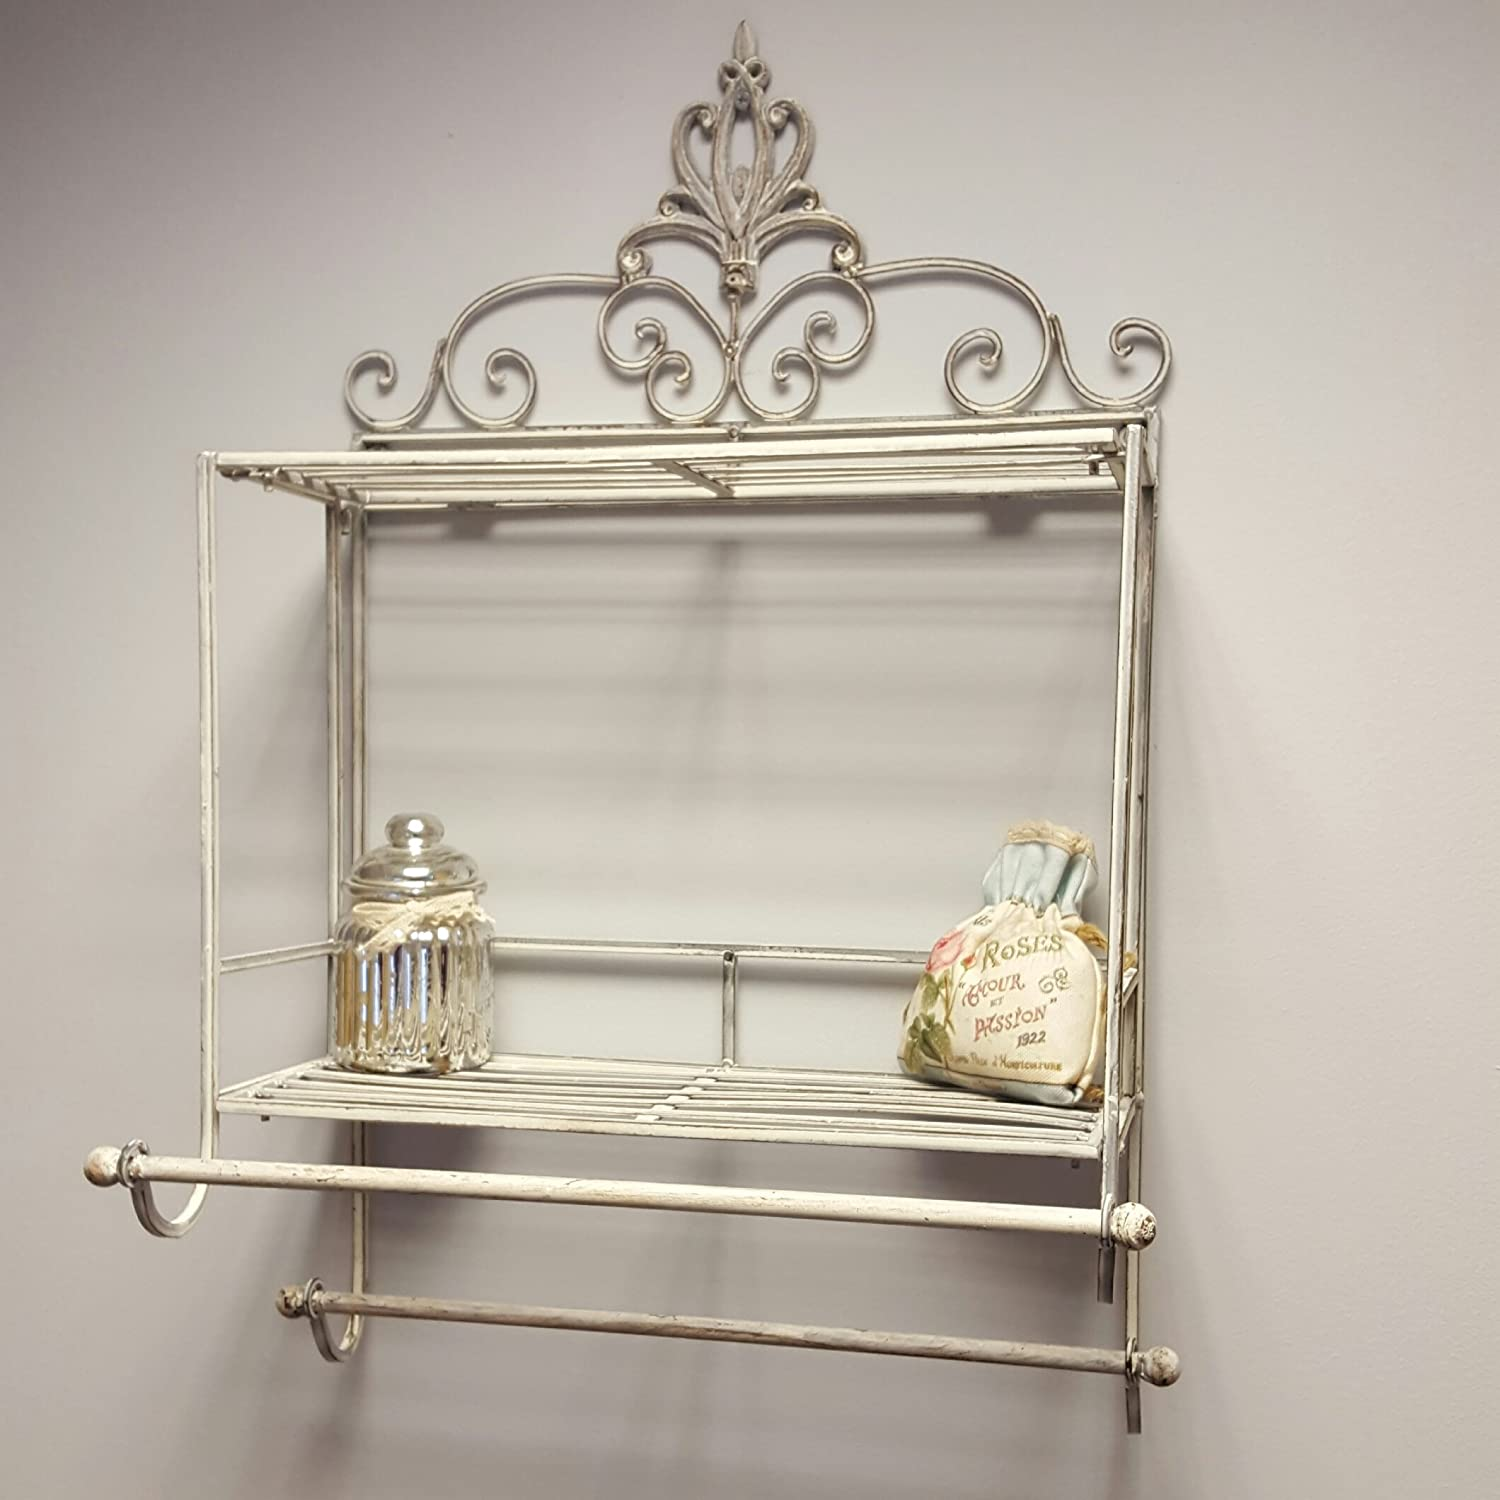 ornate italian chairish product crown italy in aspect gilt made wall height shelf canopy silver fit bed width